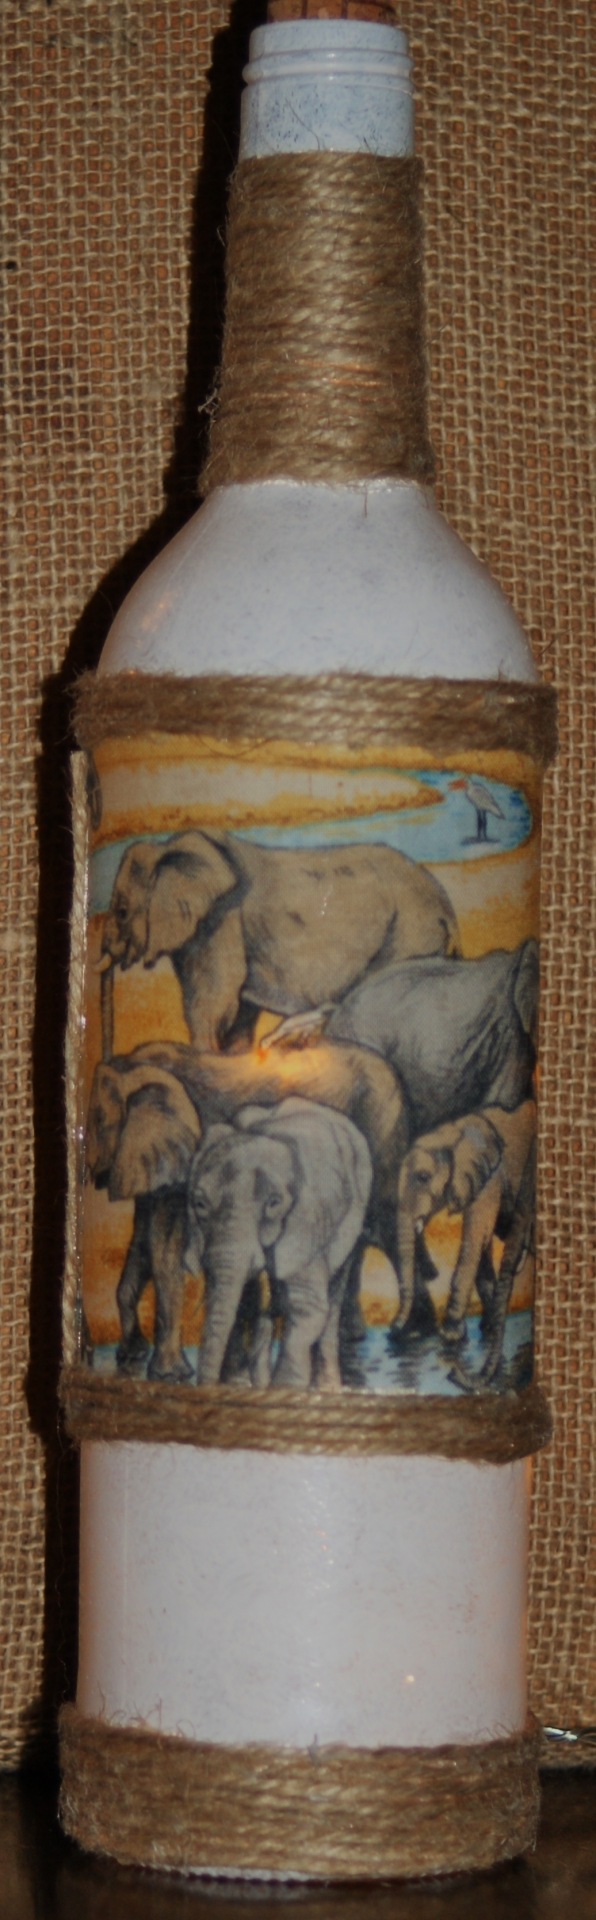 "Recycled  Wine  Bottle Light  ""Elephant Herd Landscape"" £17.50"